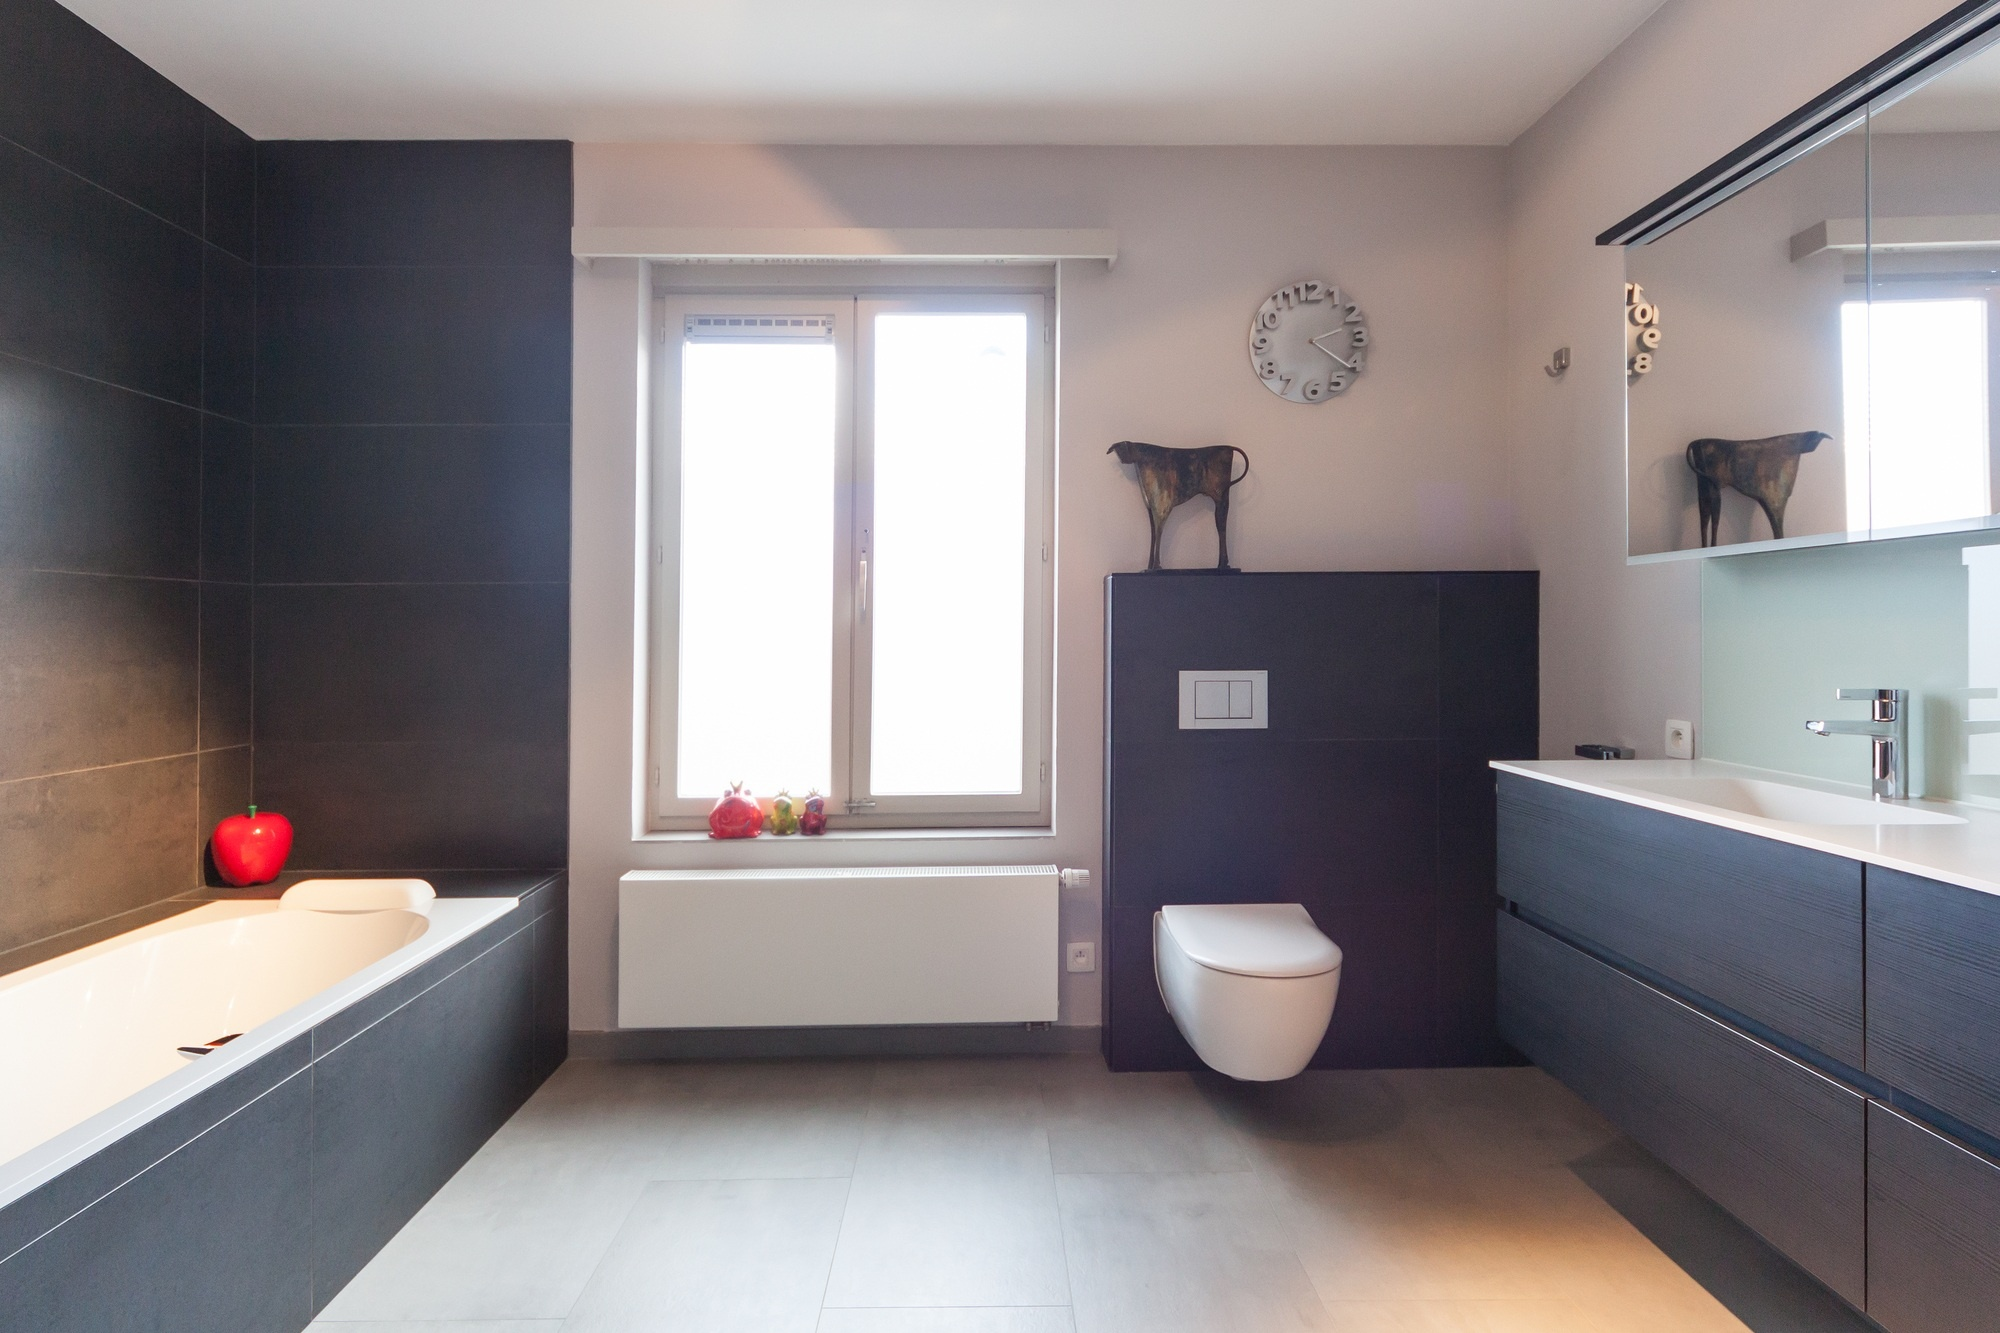 http://www.vdberg.be/thumbnail/full/383/renovaties-badkamers-minderhout.jpg